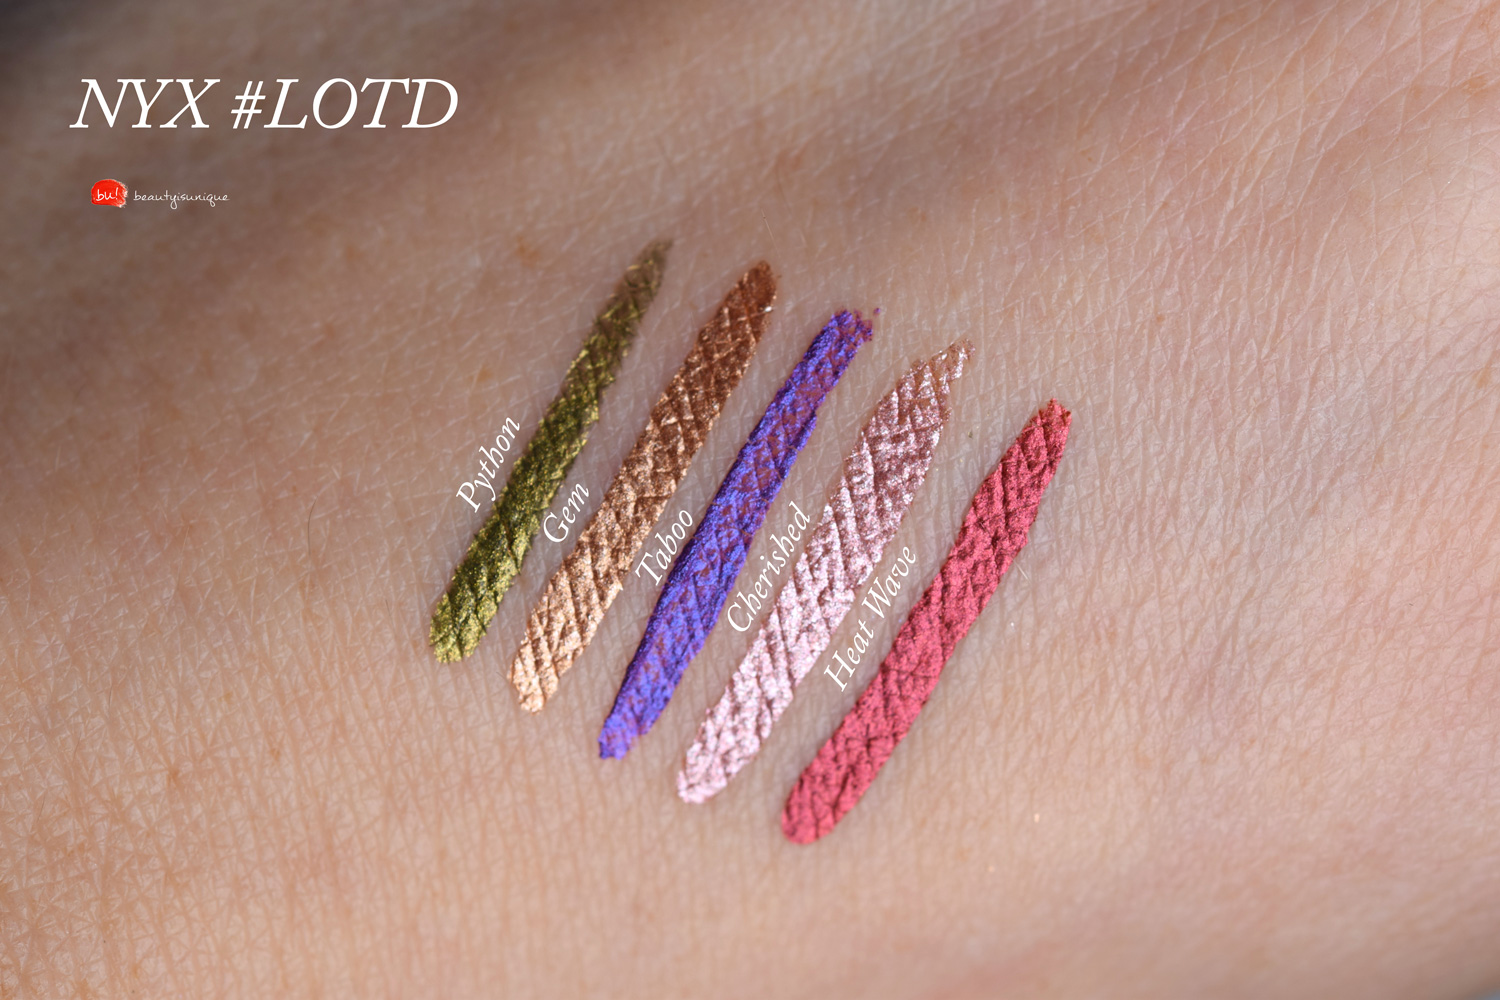 nyx-lotd-lop-of-the-day-swatches